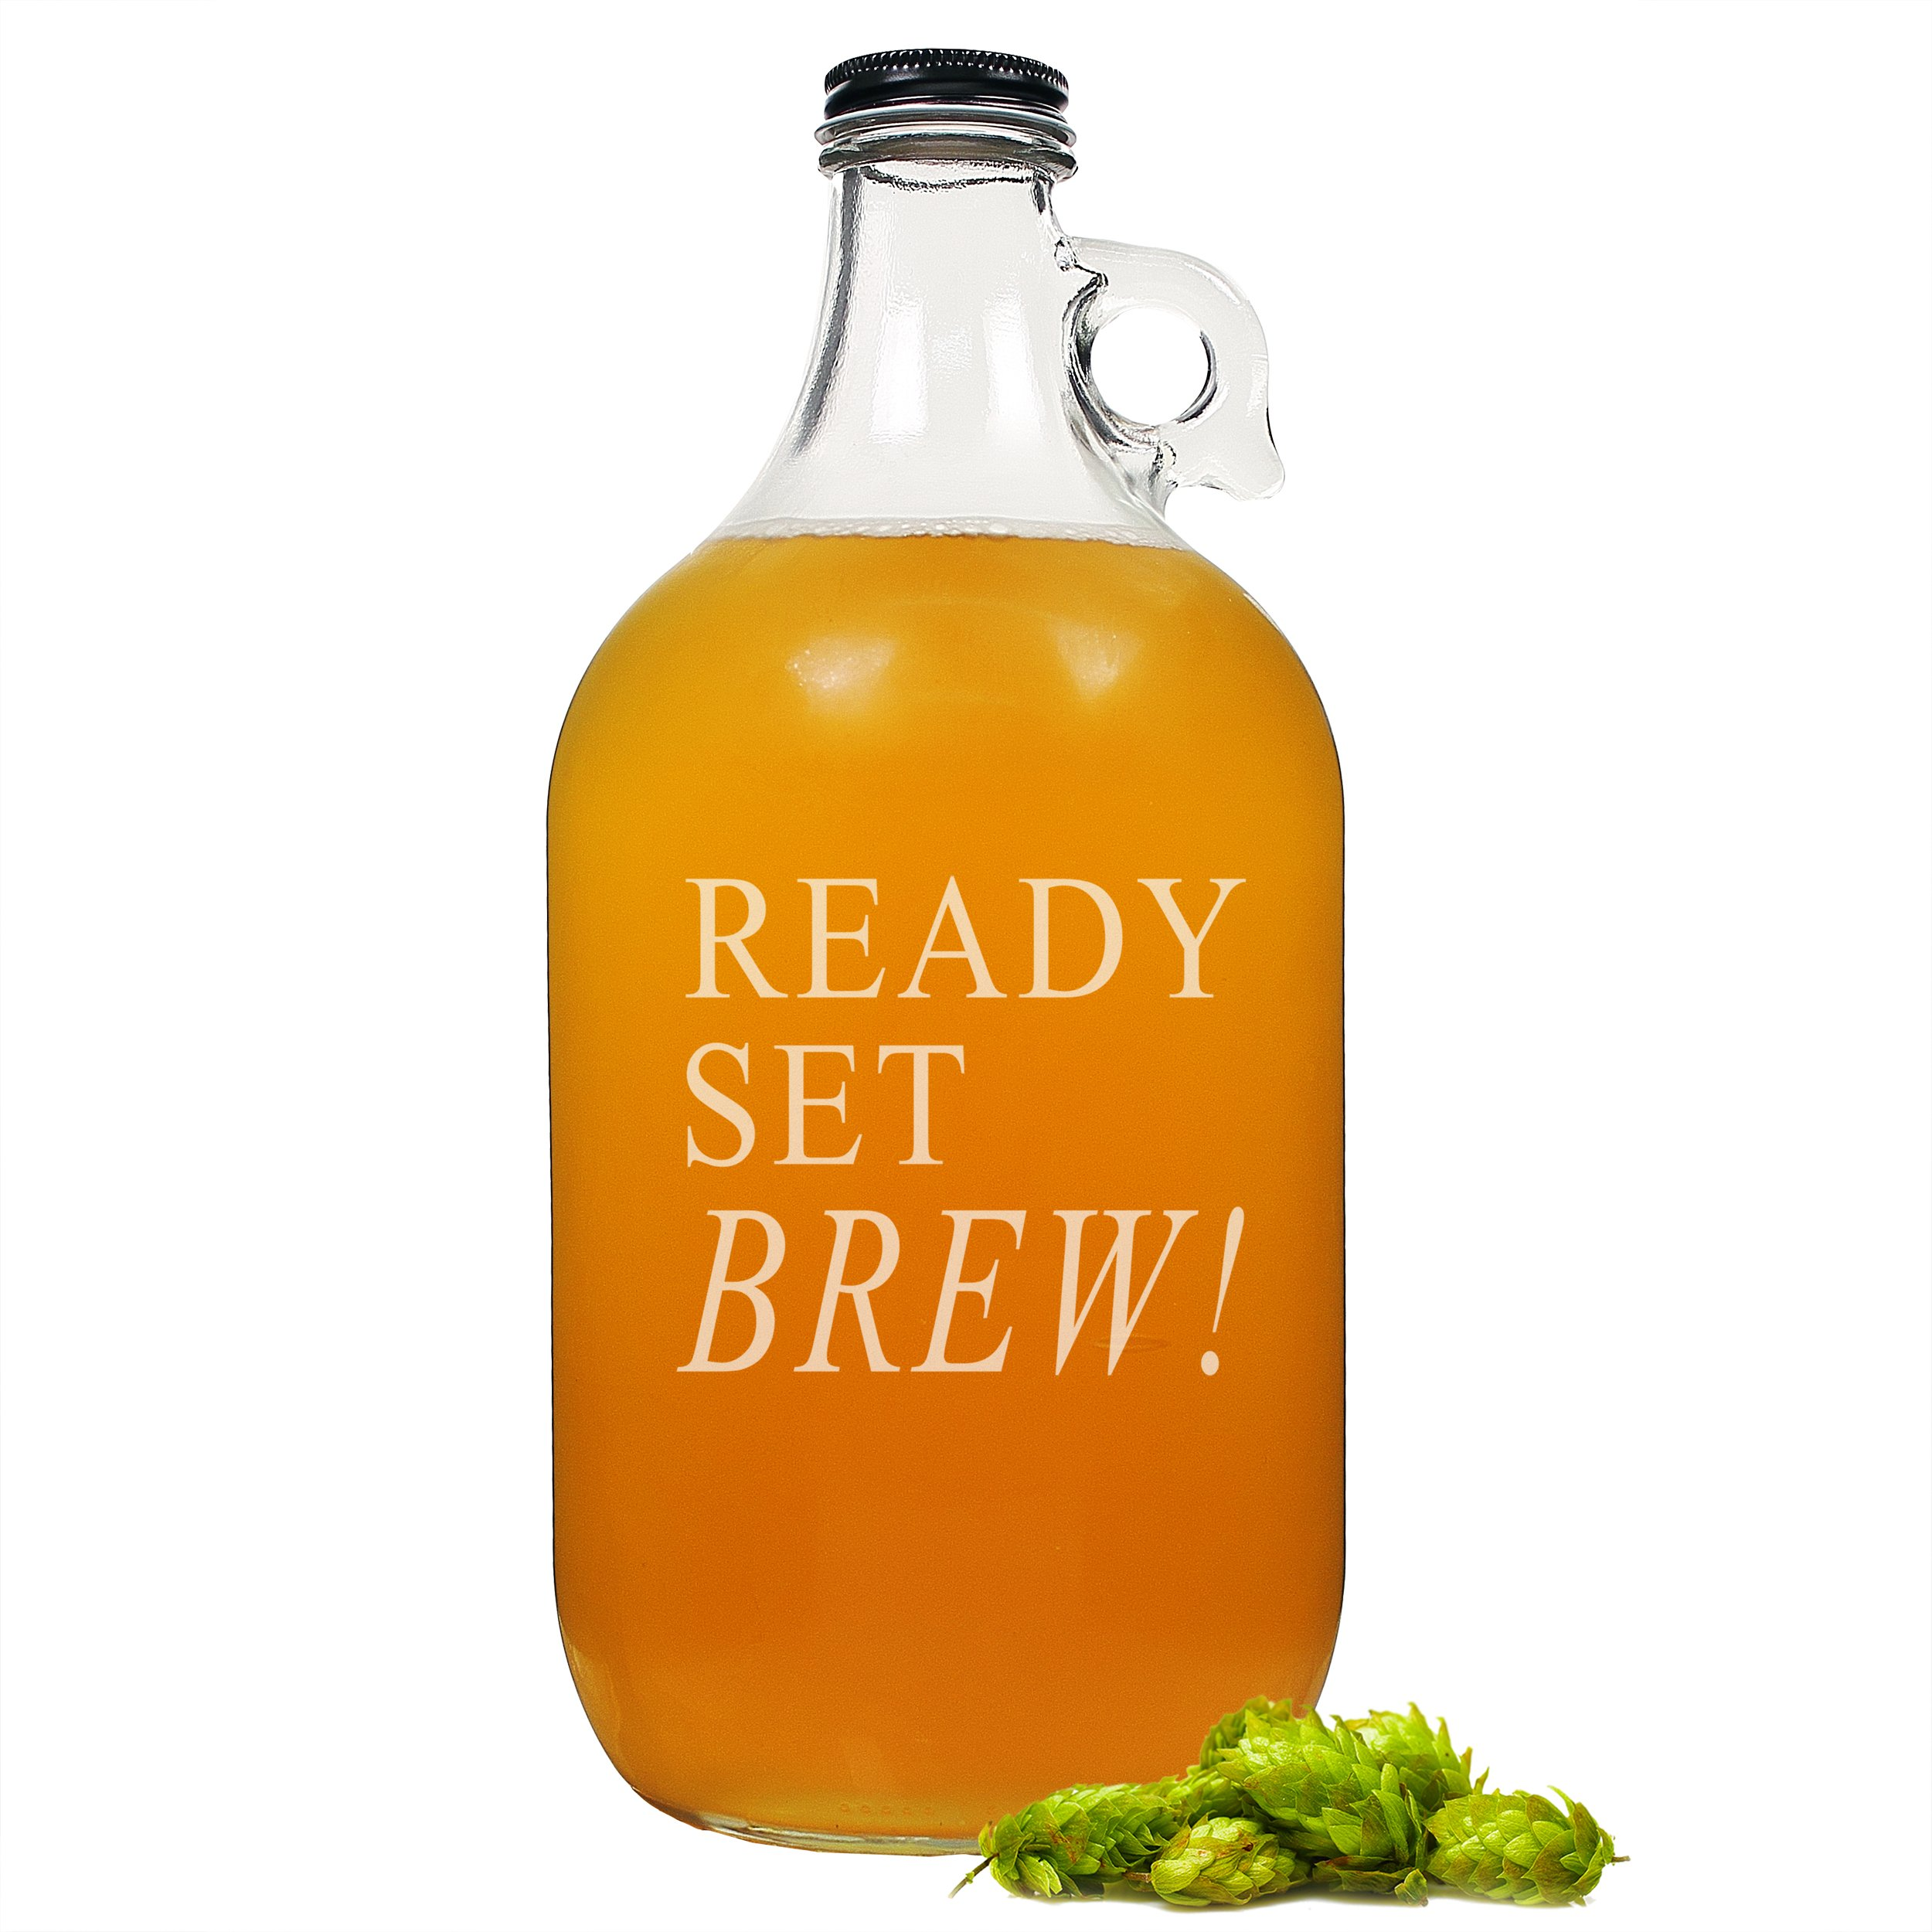 Cathy's Concepts Ready Set Brew! Glass Growler Beer Bottle